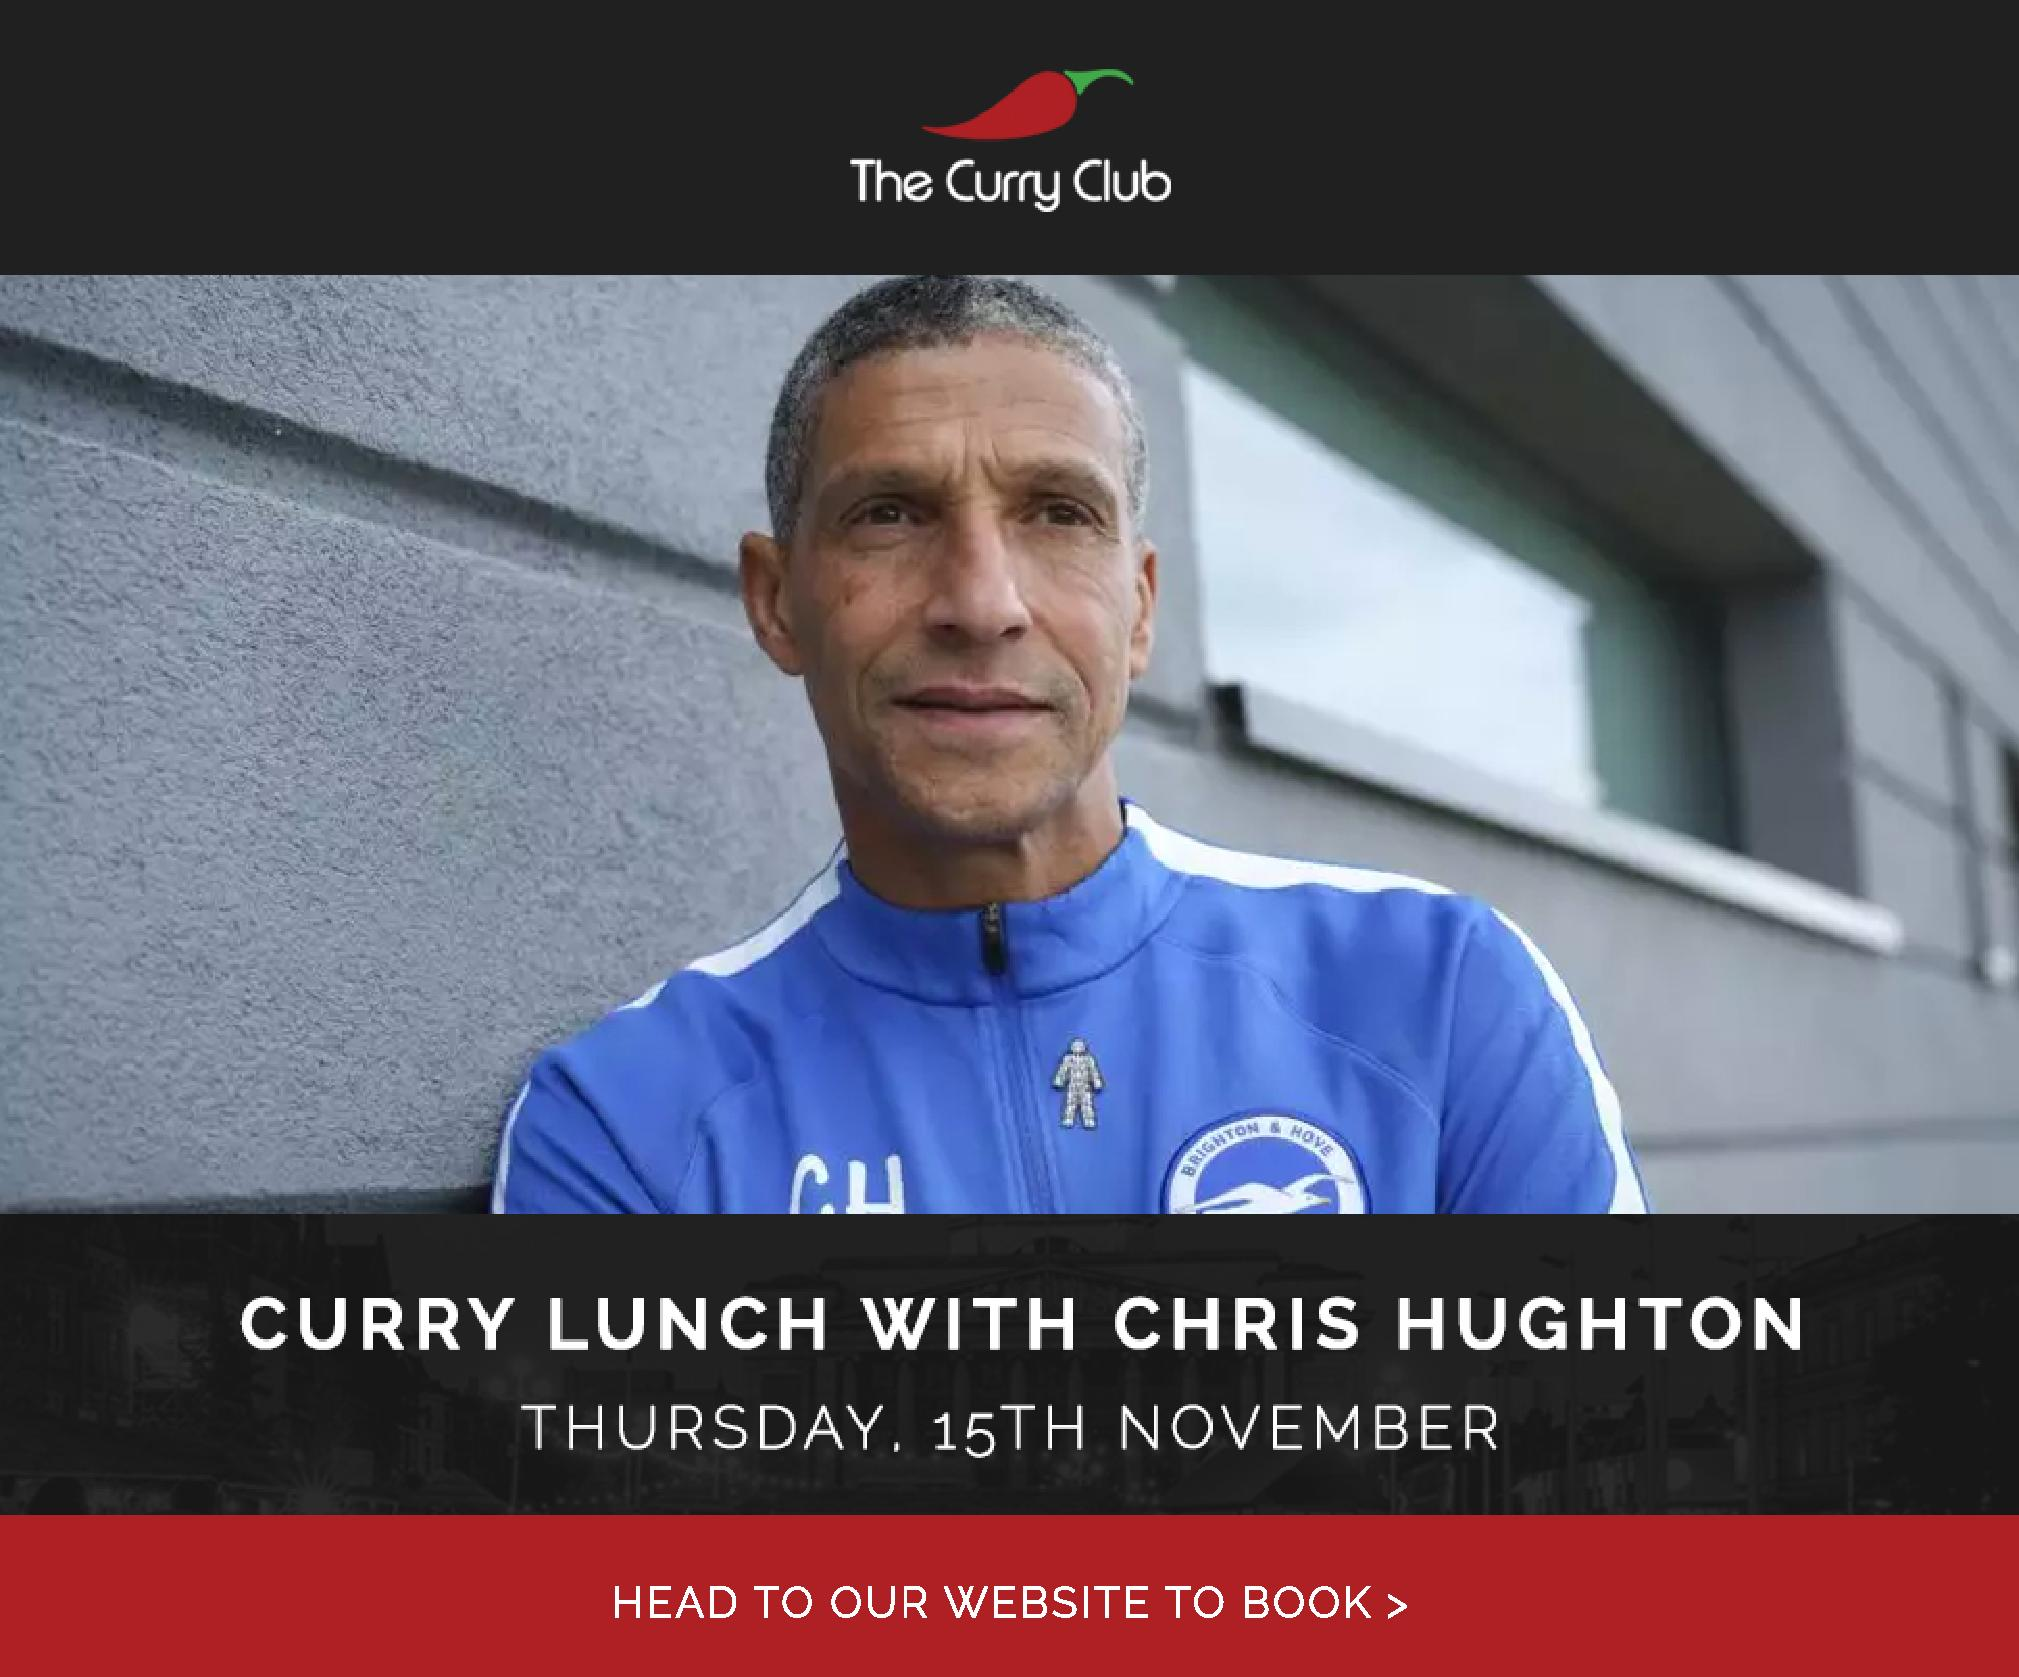 Curry Lunch with Chris Hughton